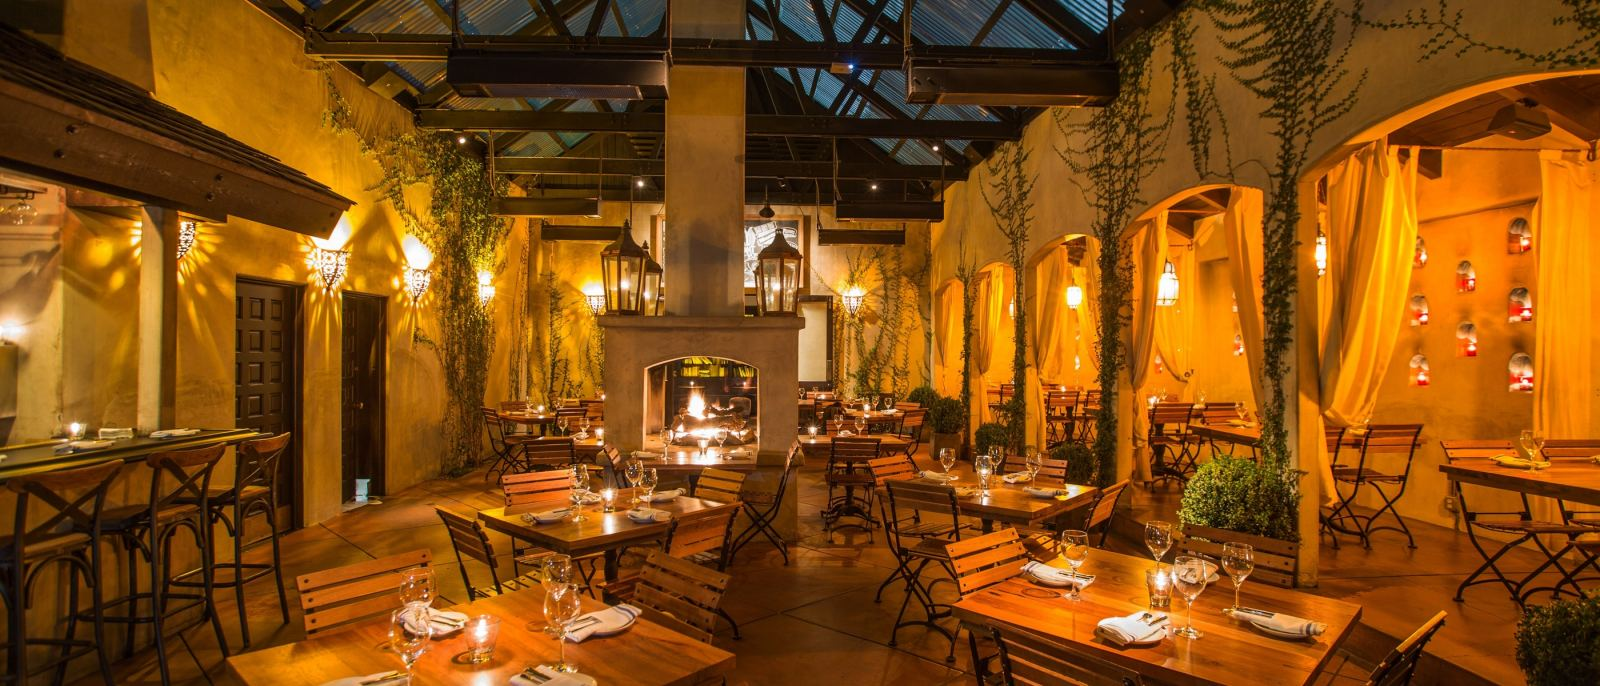 Patio at Firefly in Studio City